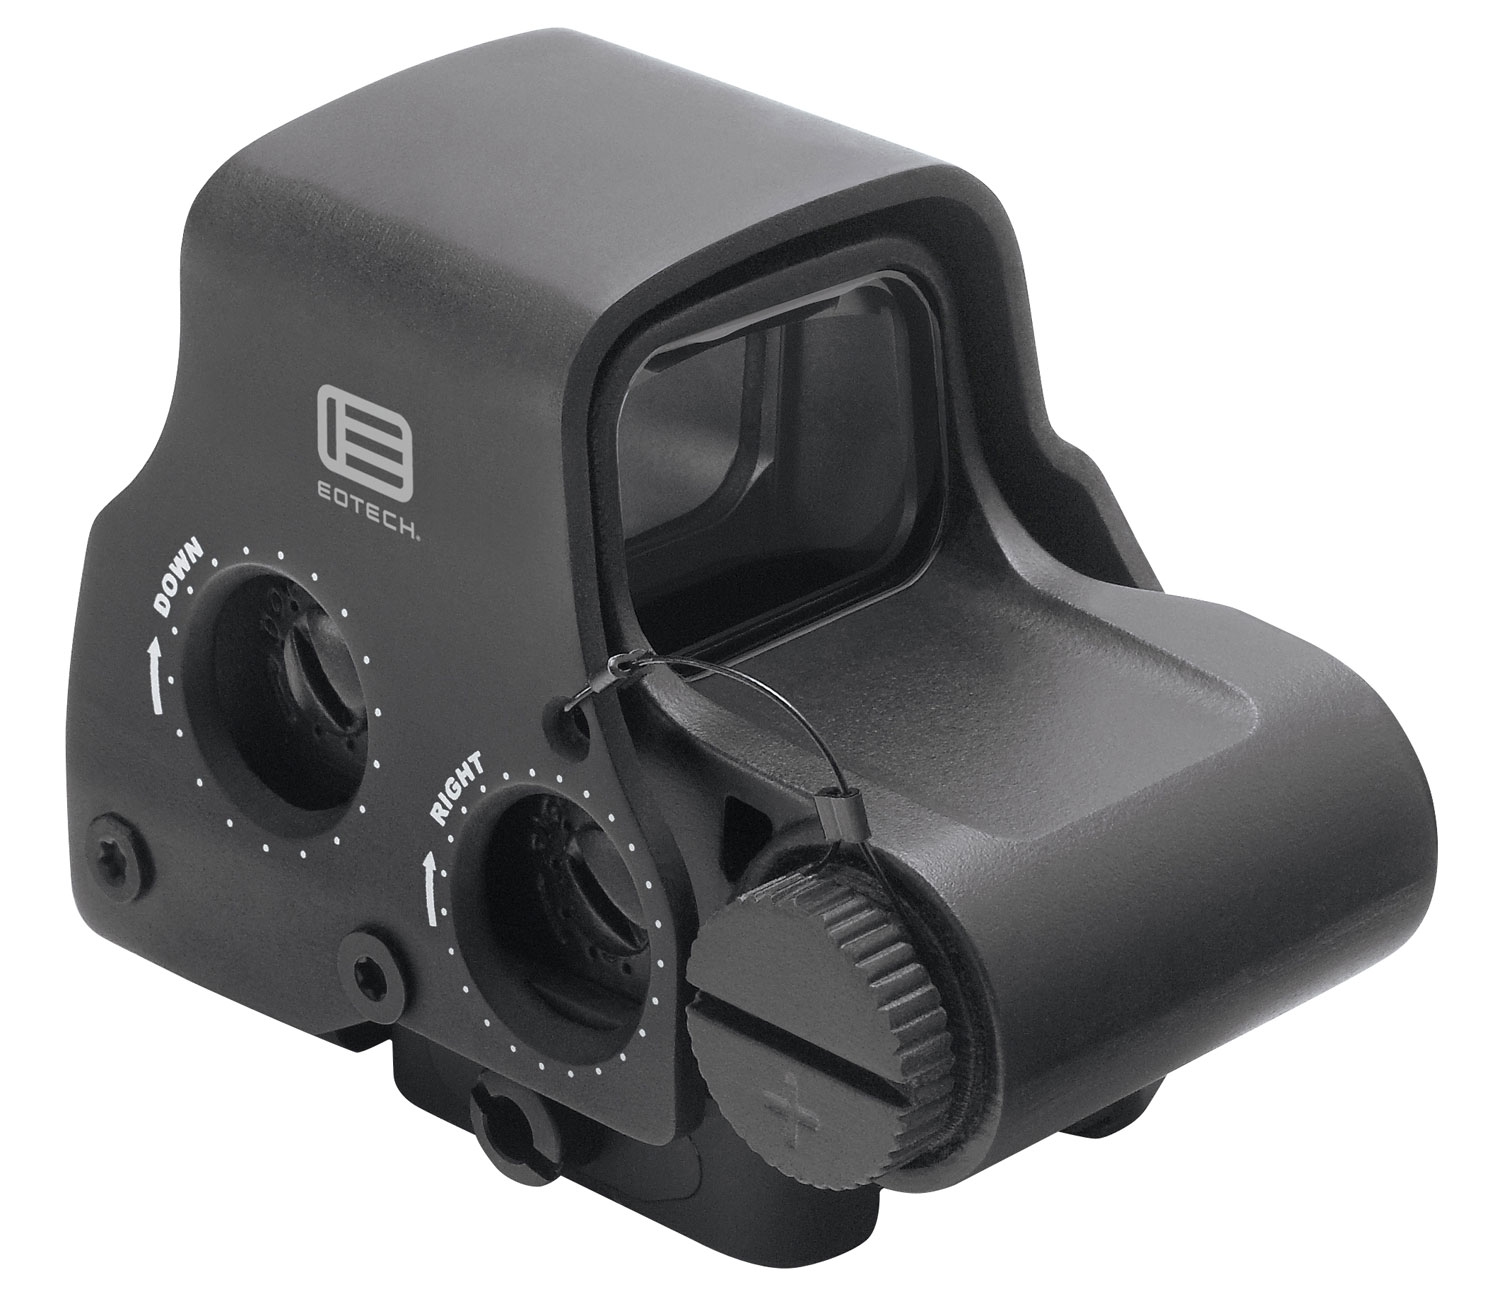 Eotech EXPS32 EXPS3 Holographic Weapon Sight 1x 68 MOA Ring/2 1 MOA Red Dot Black CR123A Lithium (1) Night Vision